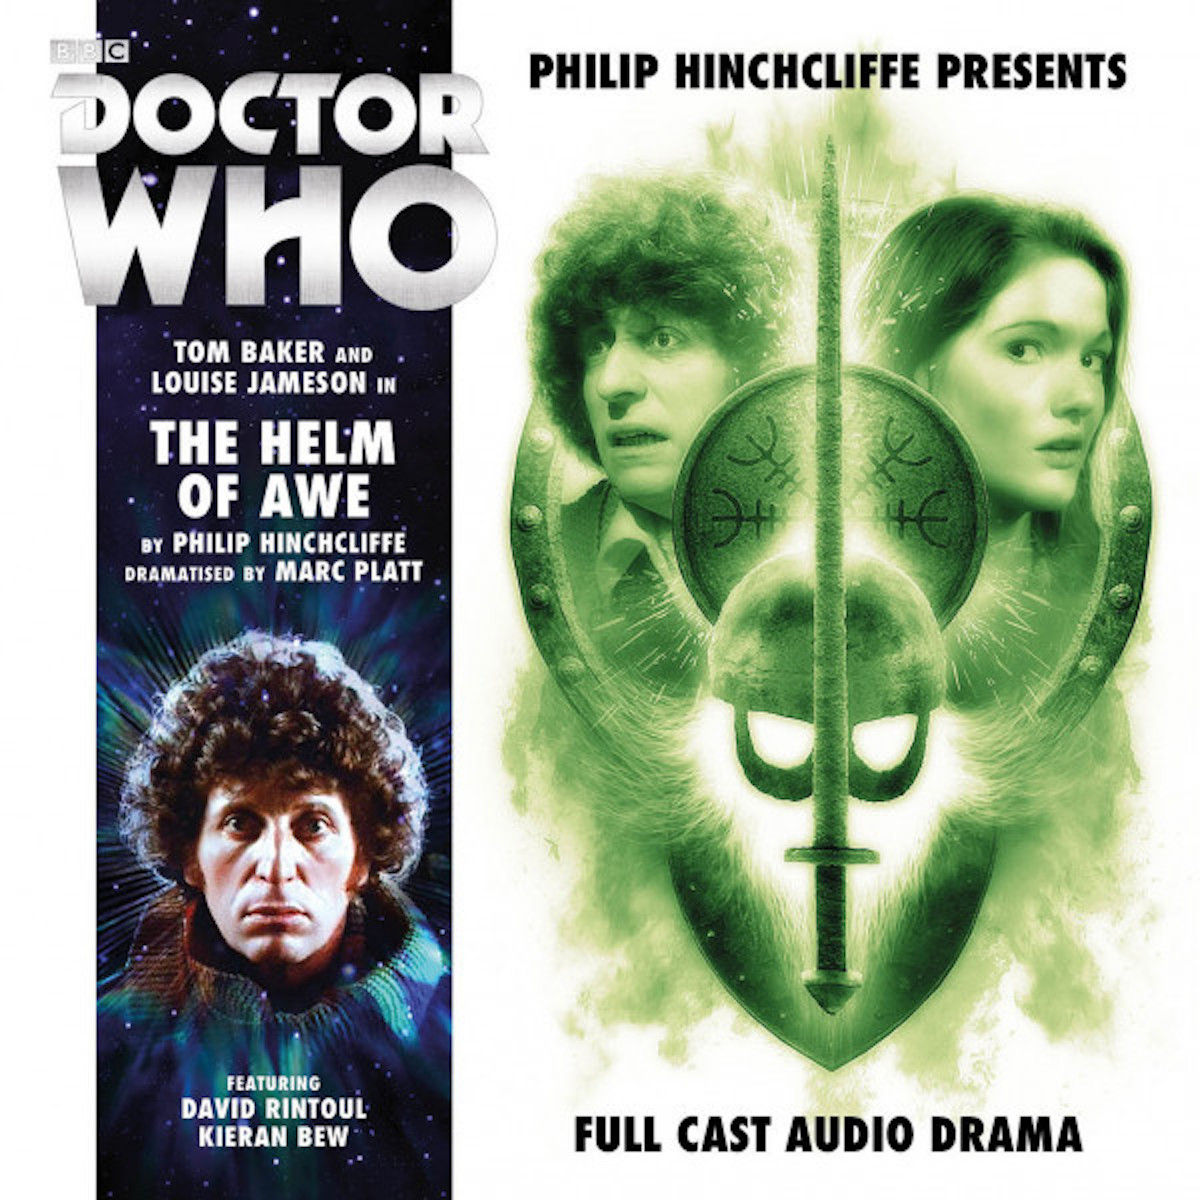 Philip Hinchcliffe Presents Volume 03: The Helm of Awe